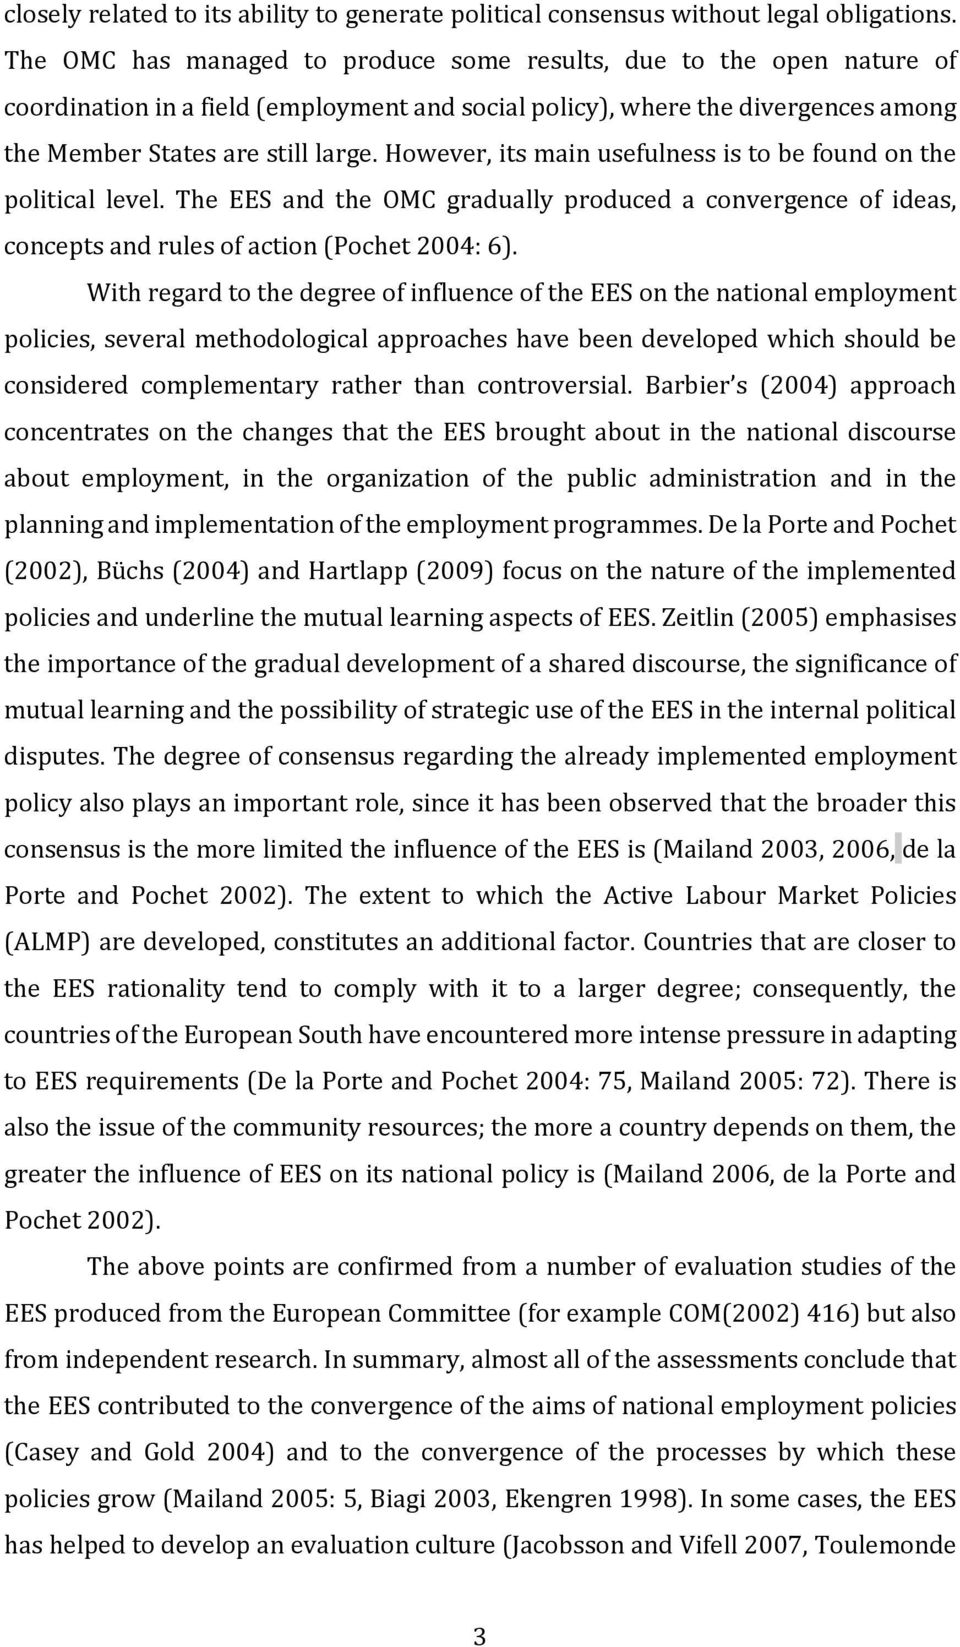 However, its main usefulness is to be found on the political level. The EES and the OMC gradually produced a convergence of ideas, concepts and rules of action (Pochet 2004: 6).